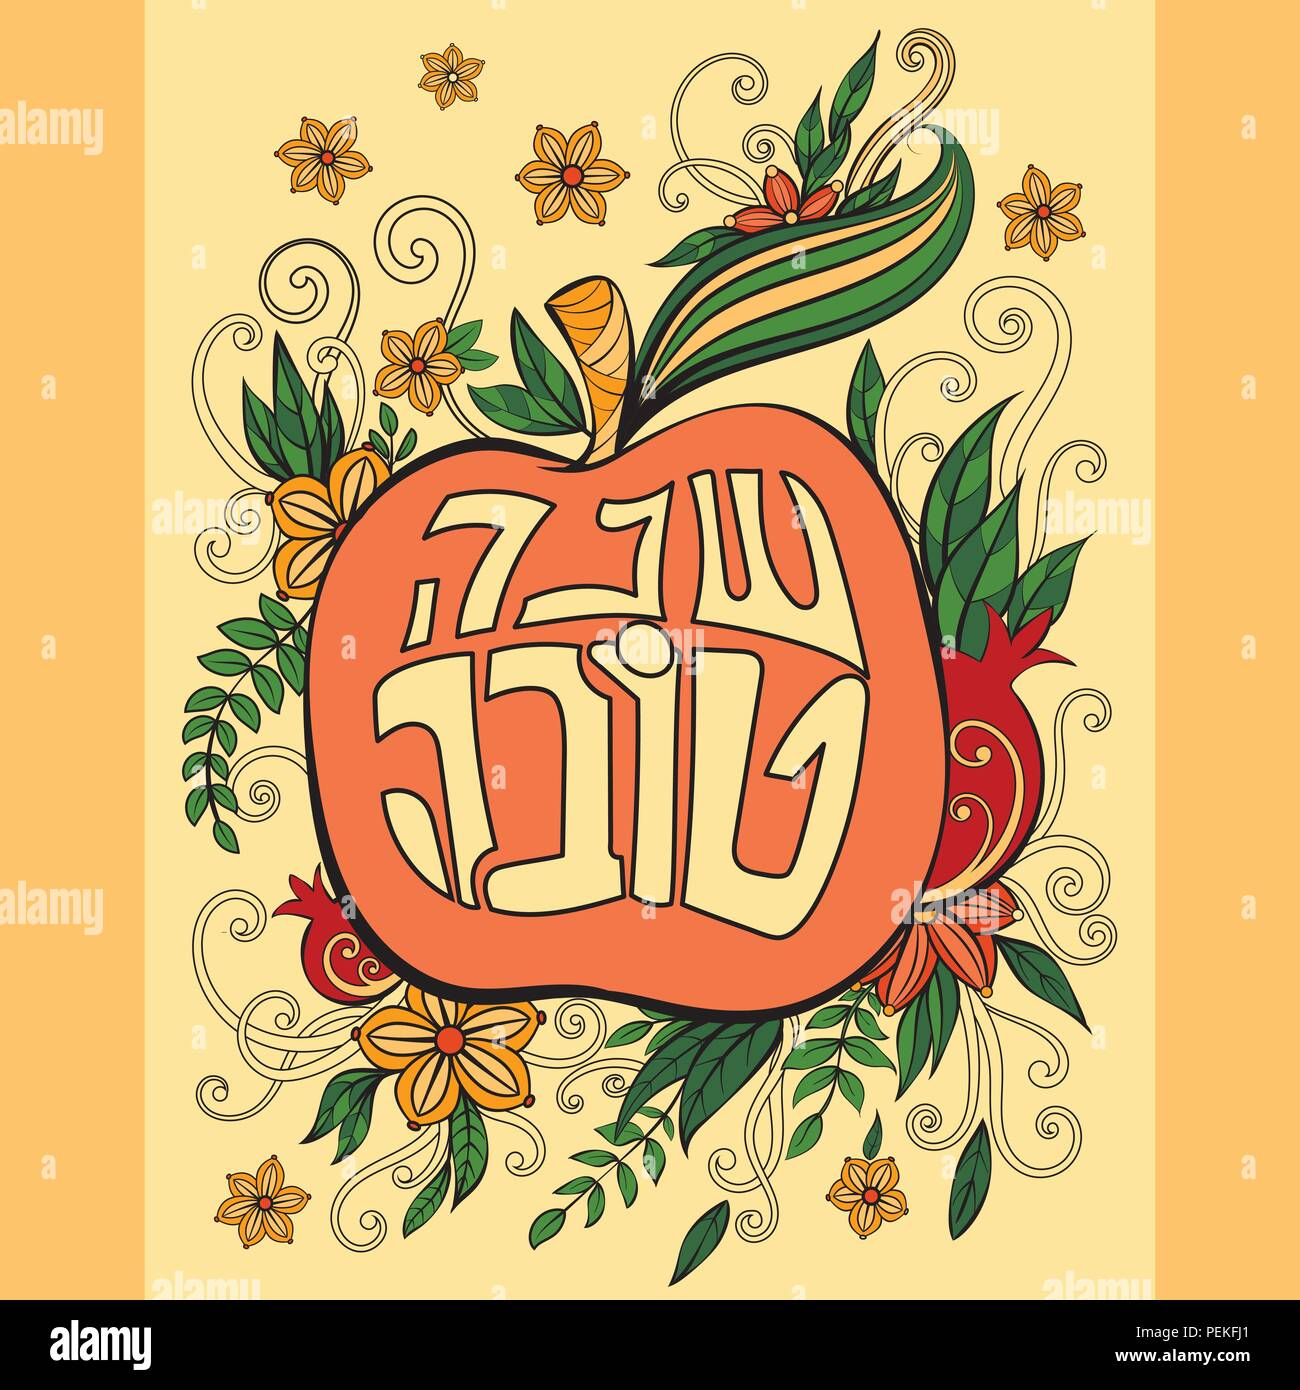 Rosh Hashanah Jewish New Year Greeting Card Design With Apple And